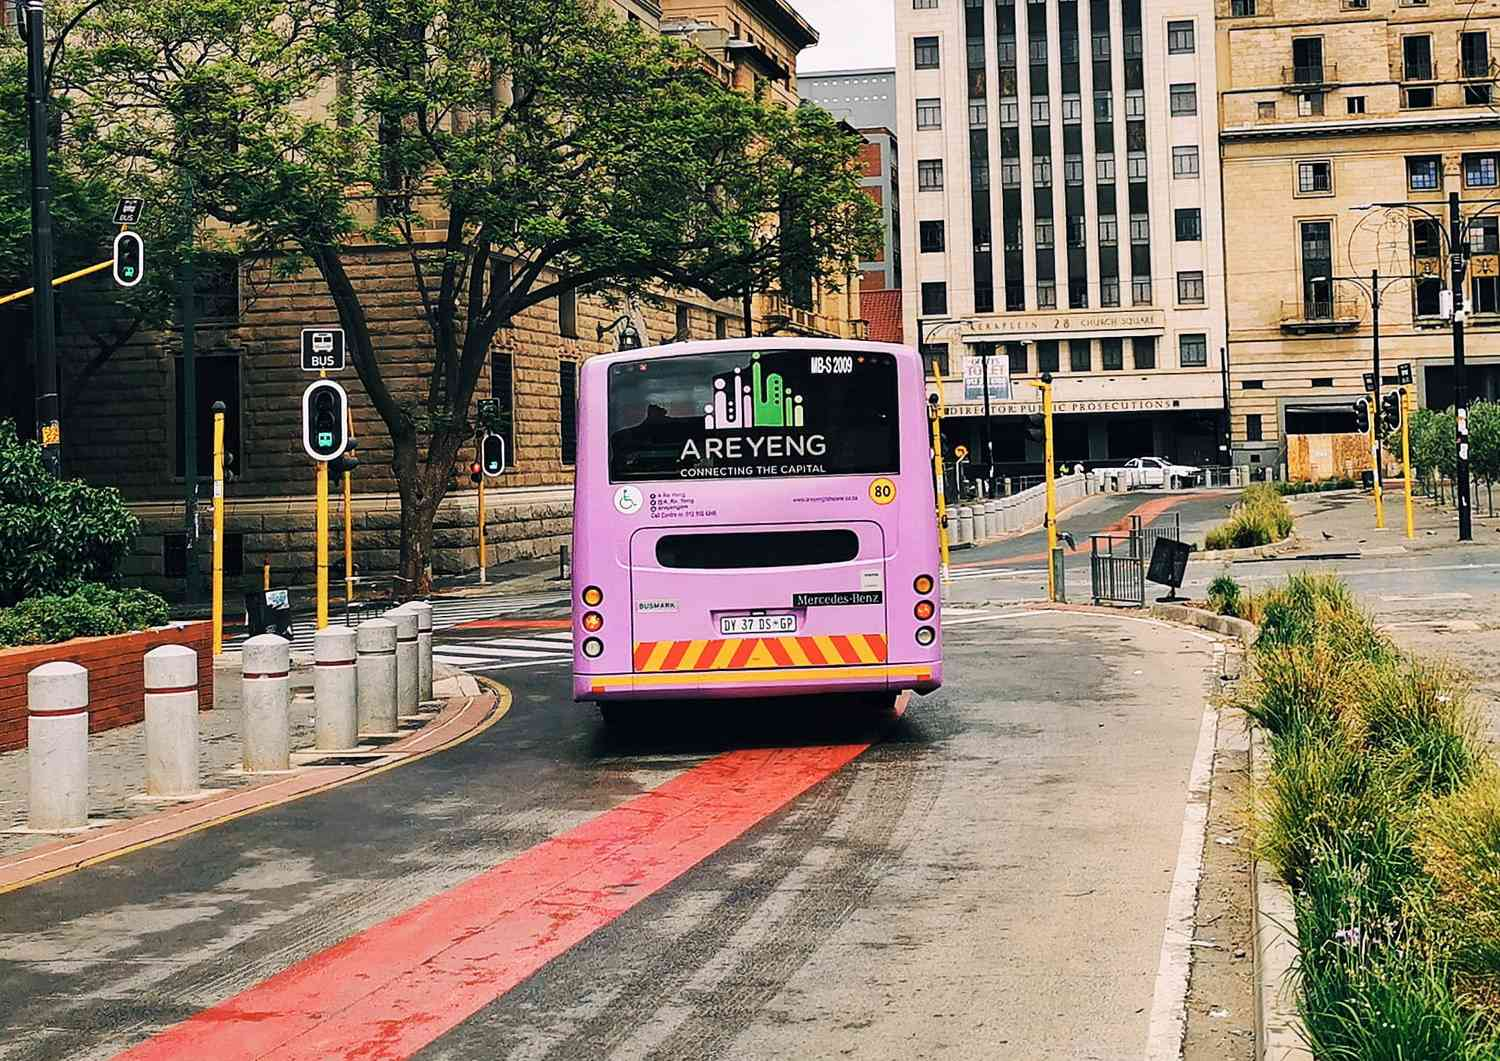 Mobility and Public Transport - Bus - Pretoria, South Africa - Urban Planning